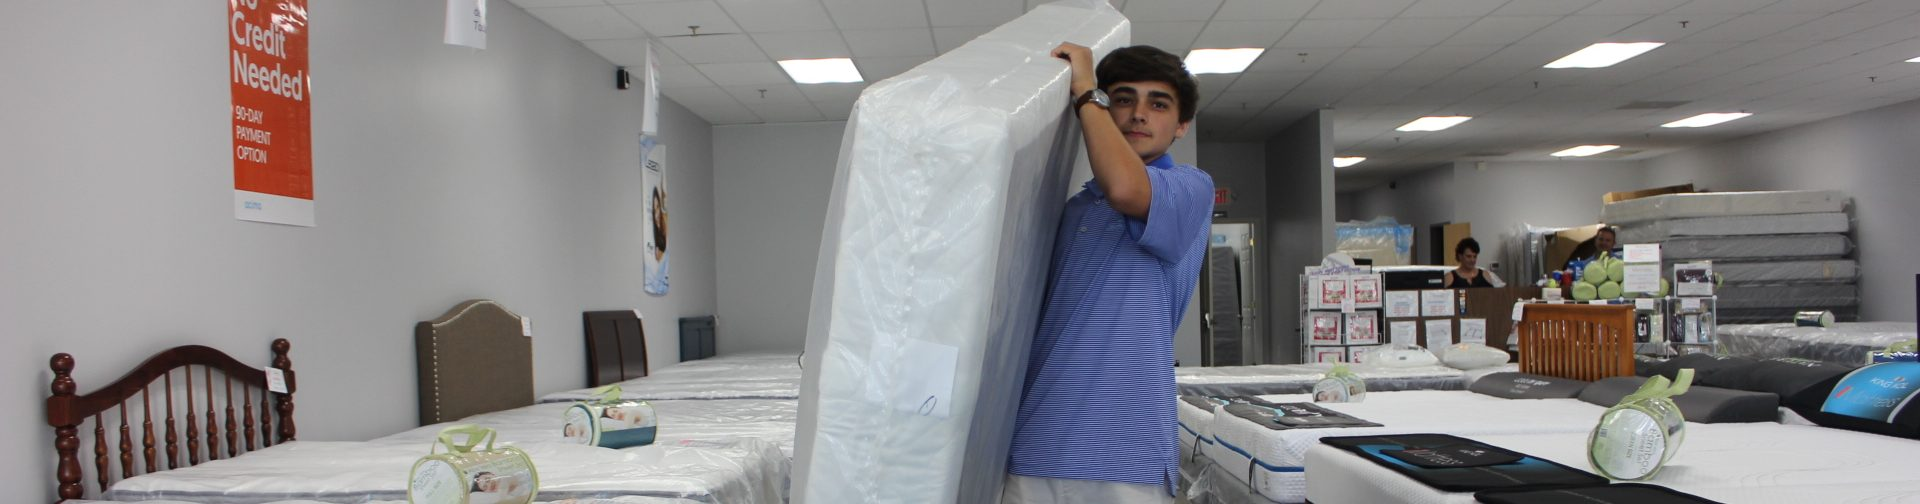 greenville mattress company family owned and operated get a mattress